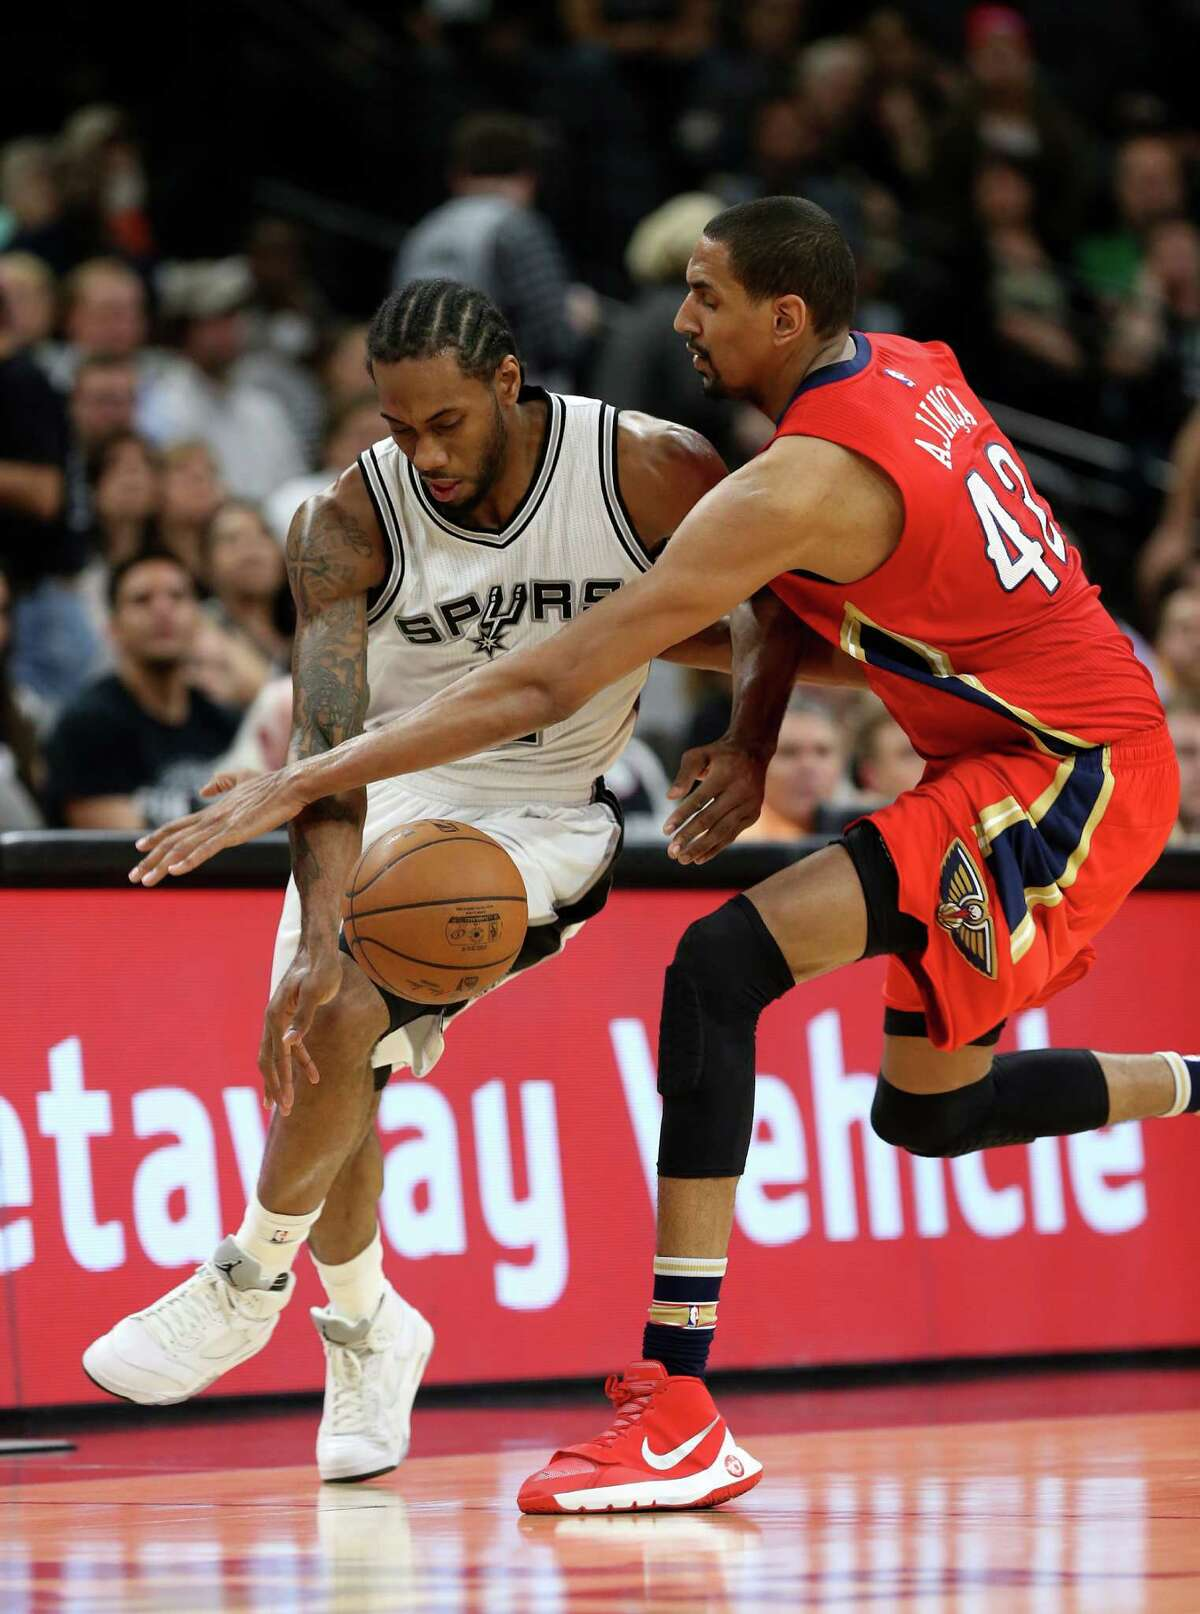 San Antonio Spurs' Kawhi Leonard steal the ball from New Orleans Pelicans' Alexis Ajinca during the first half at the AT&T Center, Wednesday, March 30, 2016.